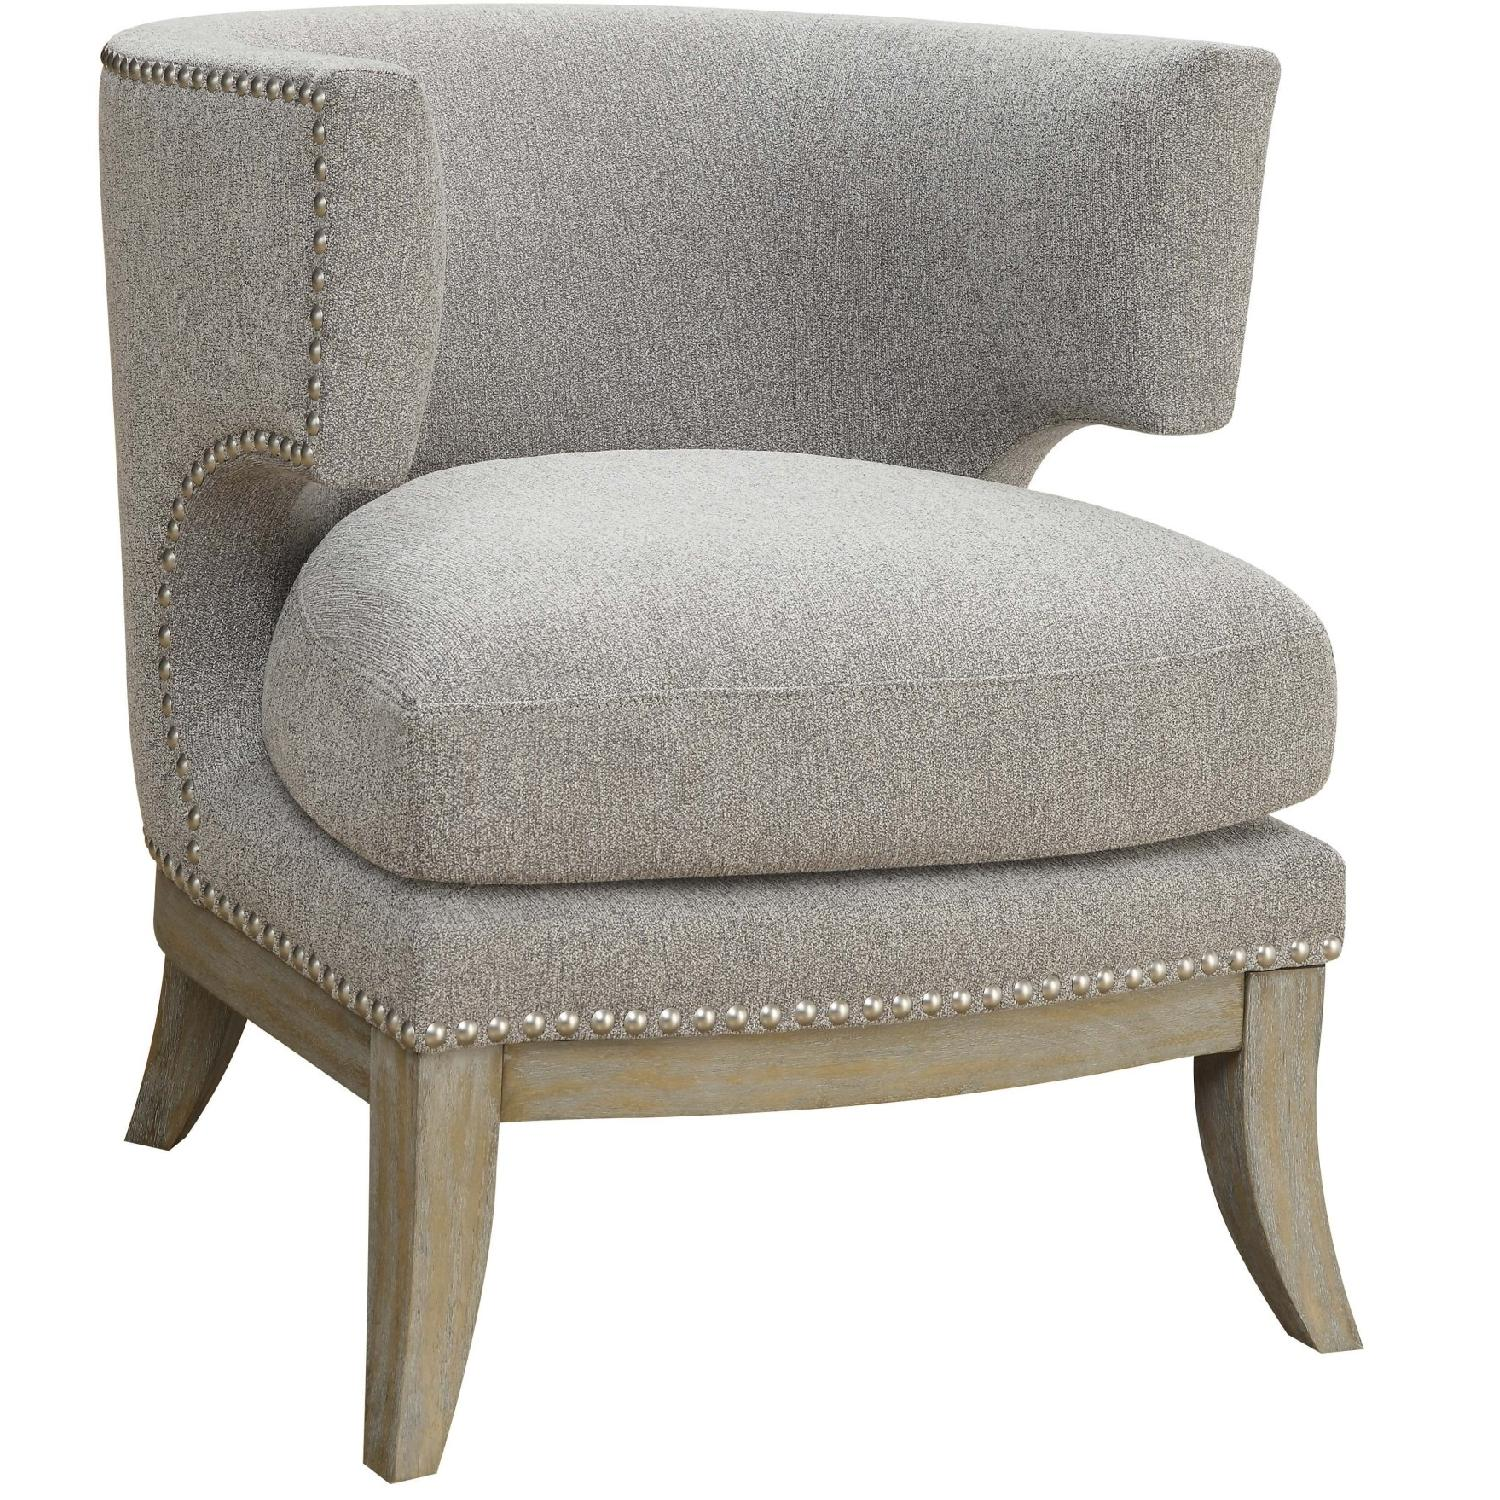 Awe Inspiring Barrel Back Modern Upholstered Accent Chair In Grey Chenile Ibusinesslaw Wood Chair Design Ideas Ibusinesslaworg